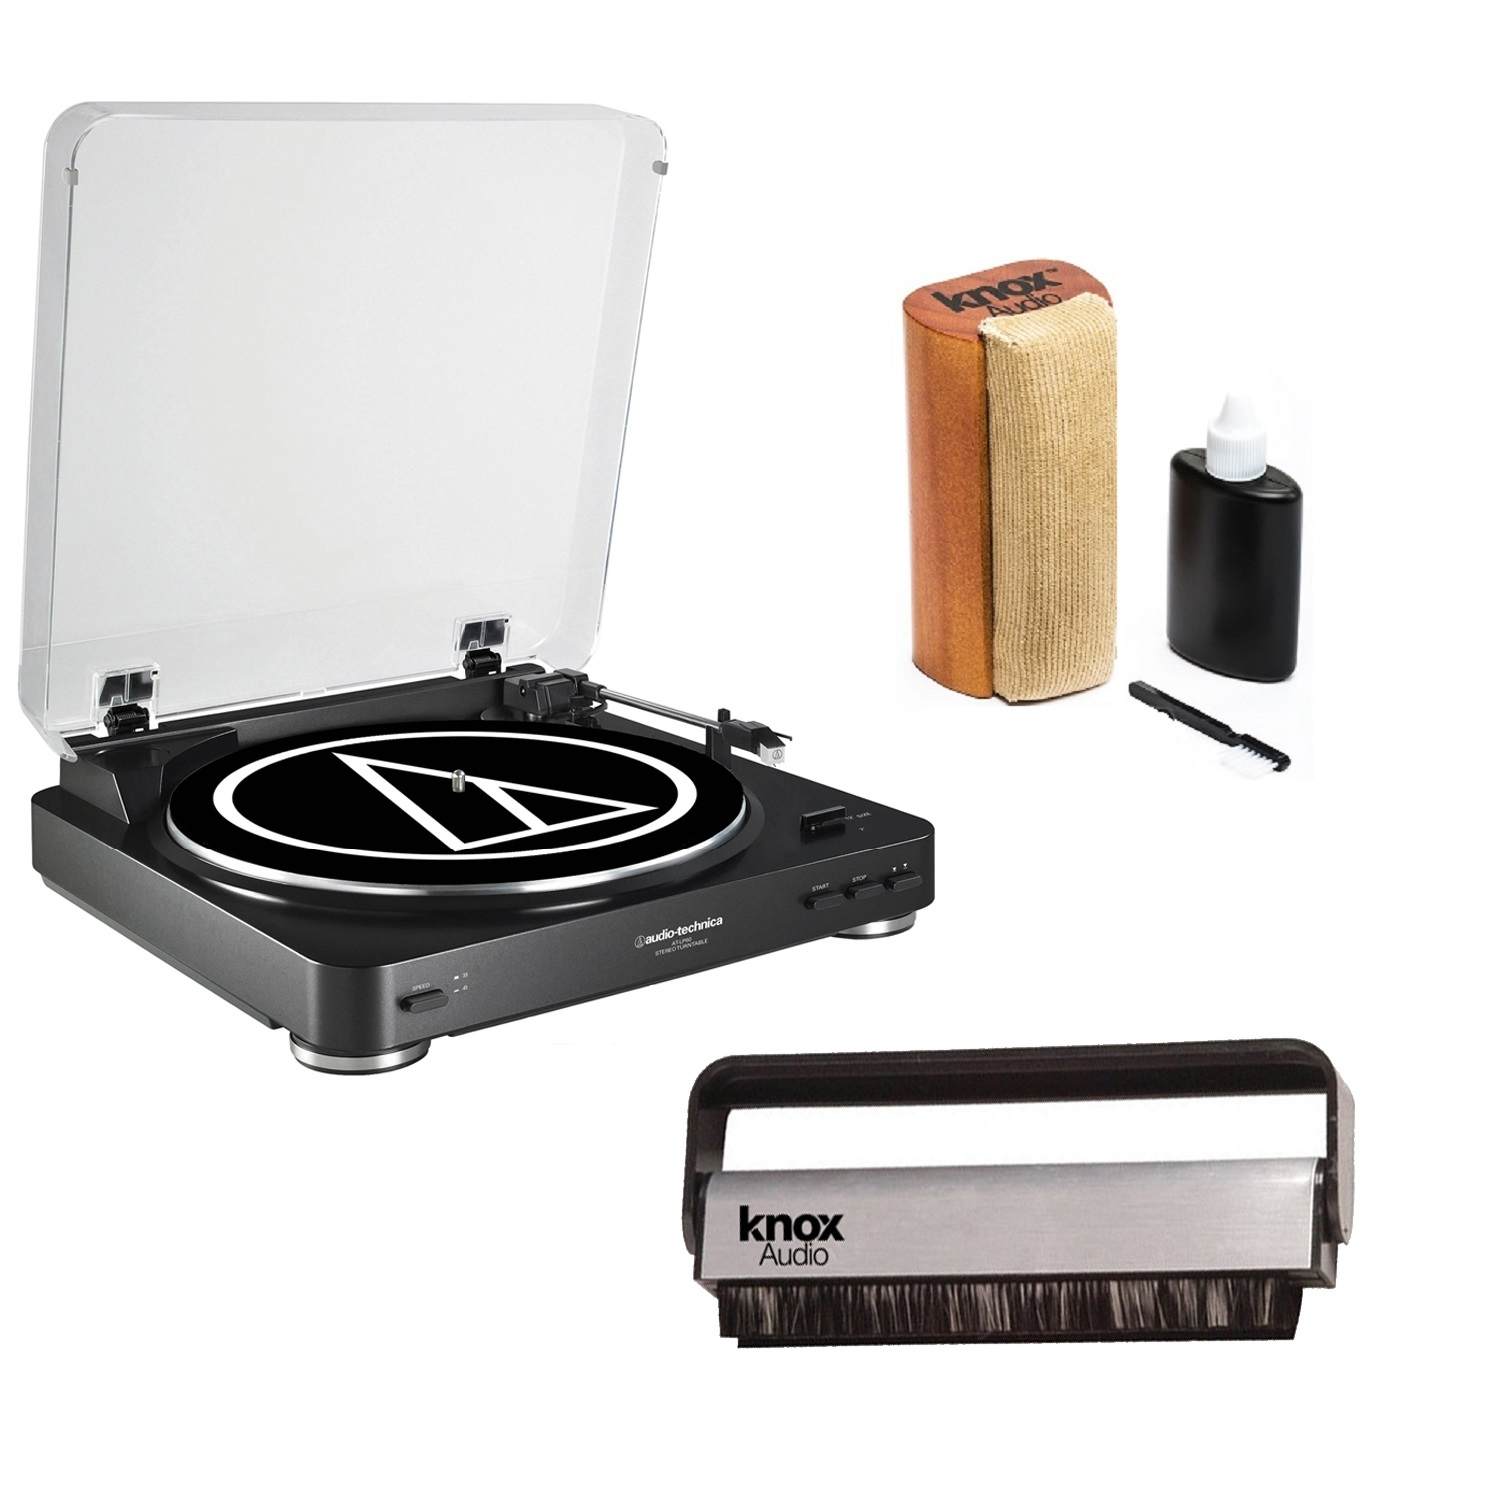 Audio-Technica AT-LP60BK Turntable + Knox Vinyl Cleaning Brush + Cleaning Kit